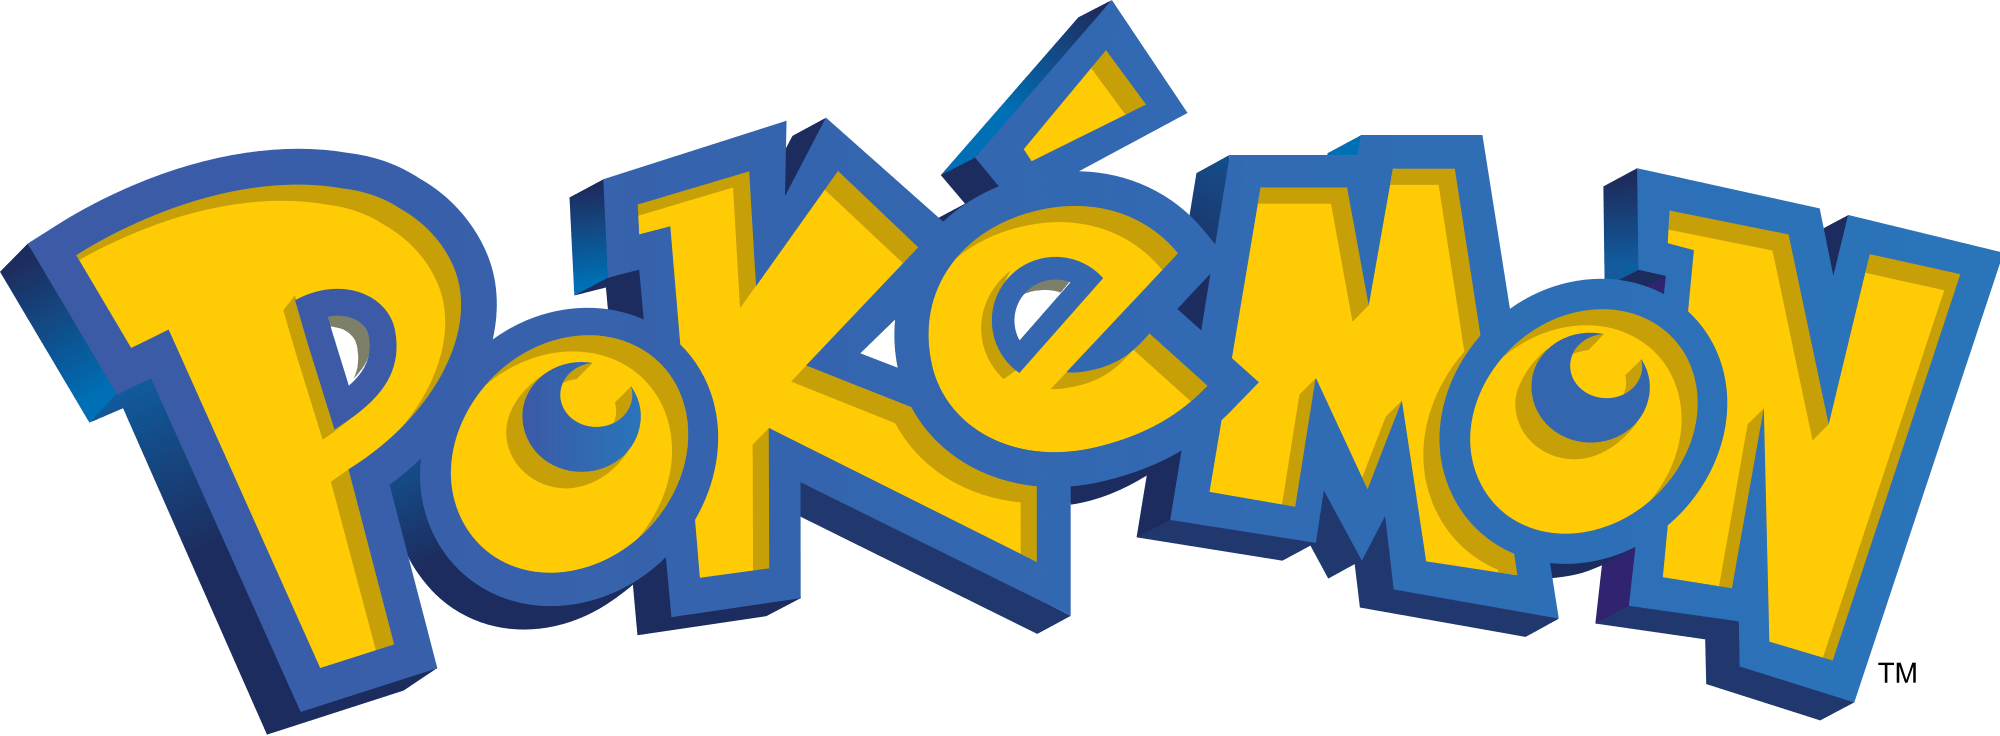 파일:pokemon_series_logo.png